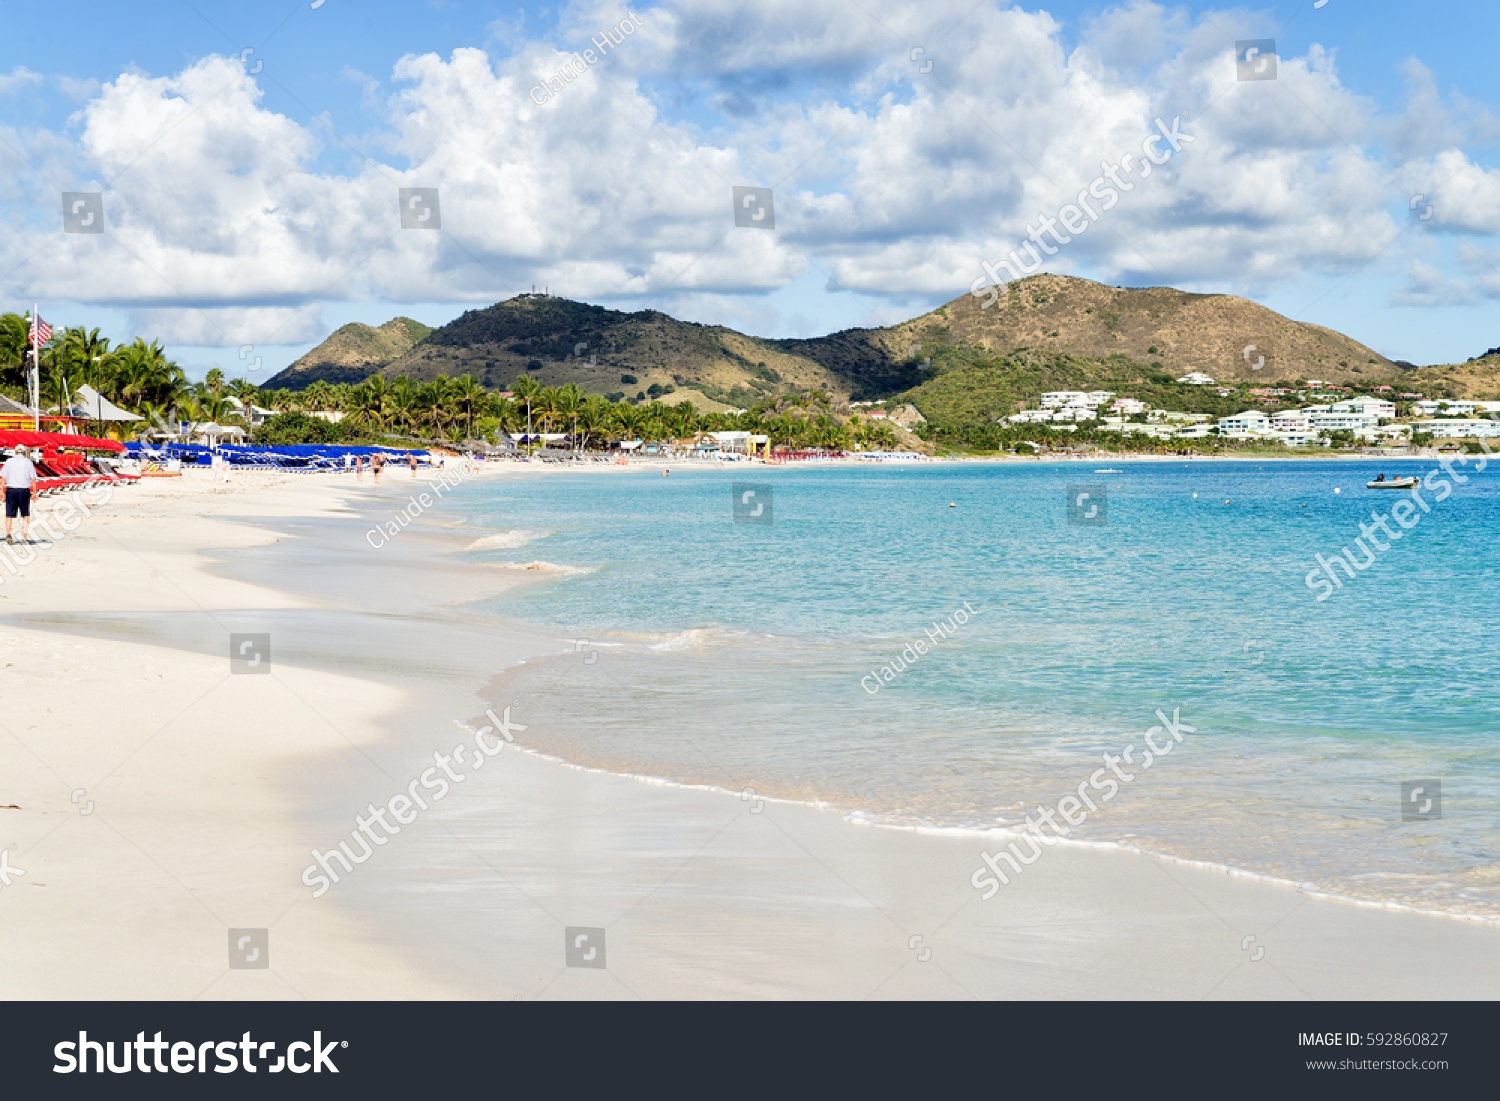 ORIENT BEACH, SAINT MARTIN, CARIBBEAN - JANUARY 21, 2017: The Orient Beach is a popular tourist destination on the Island of Saint Martin. It is lined with restaurants, shops and water activities.